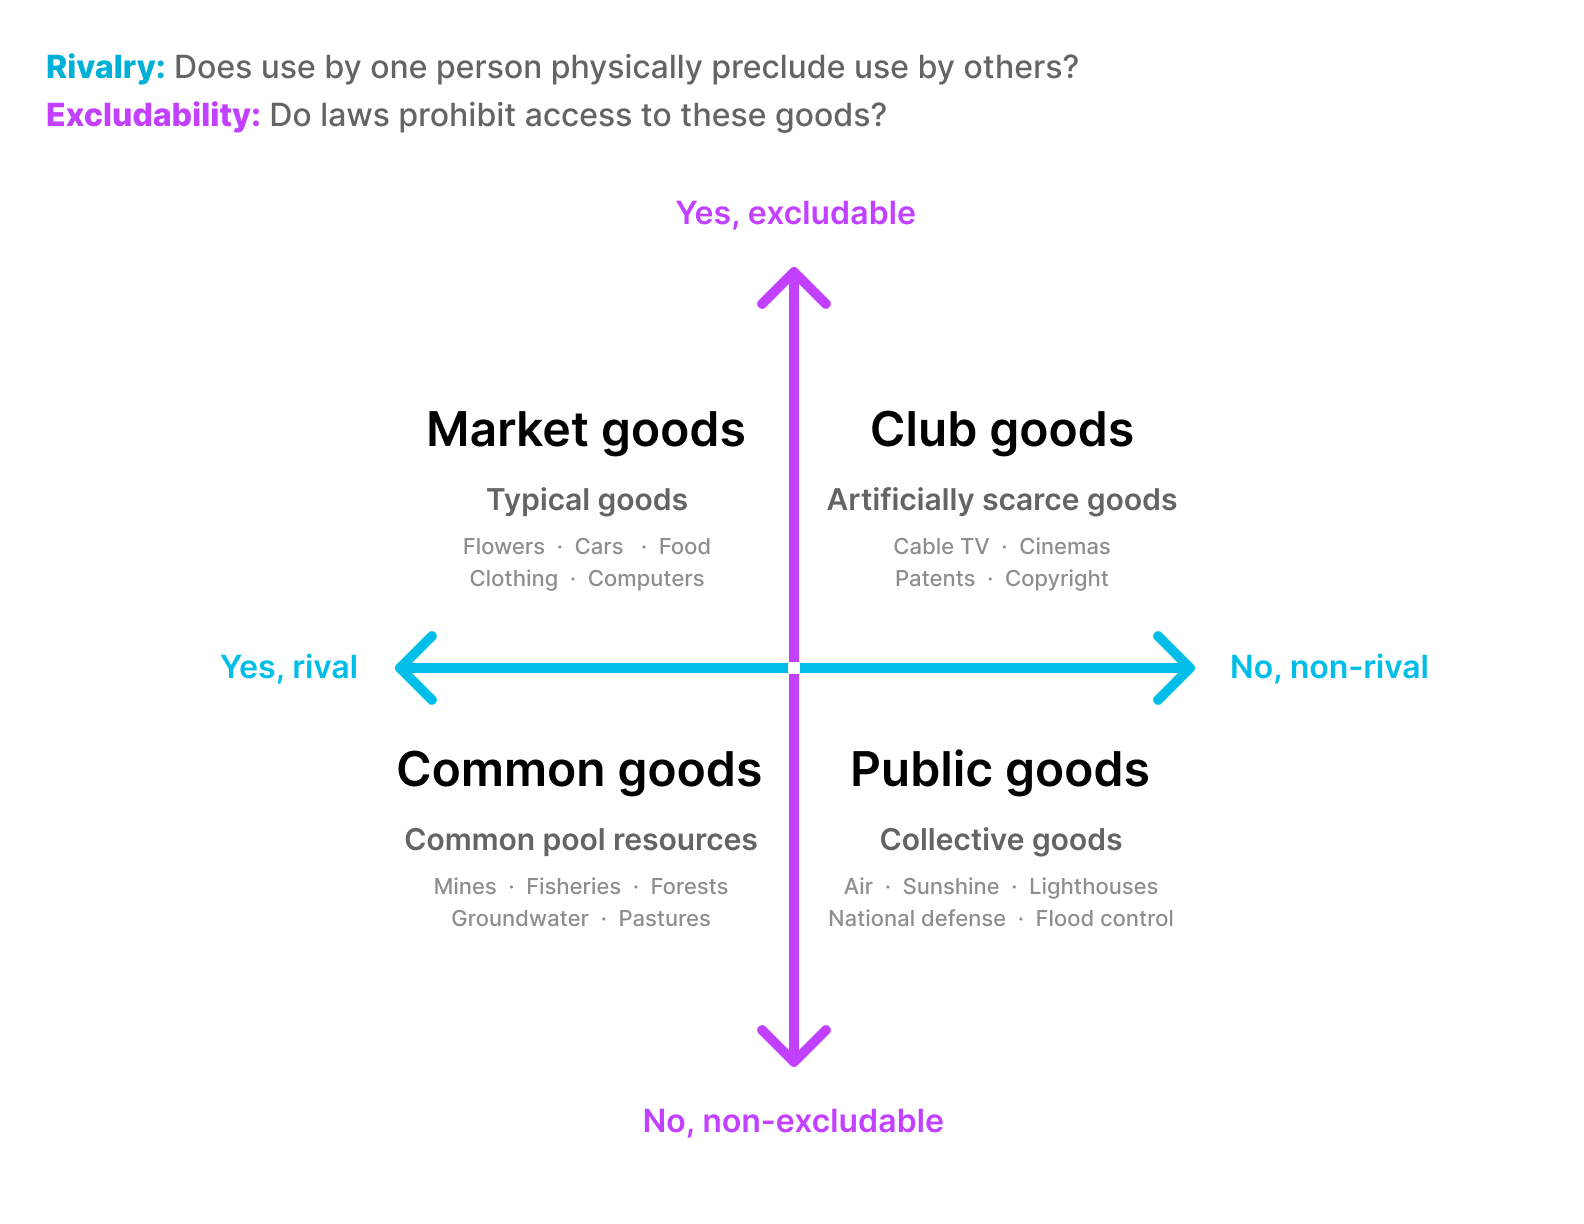 four quadrant diagram of market goods, club goods, common goods, and public goods graphed along the axes of excludability and rivalry